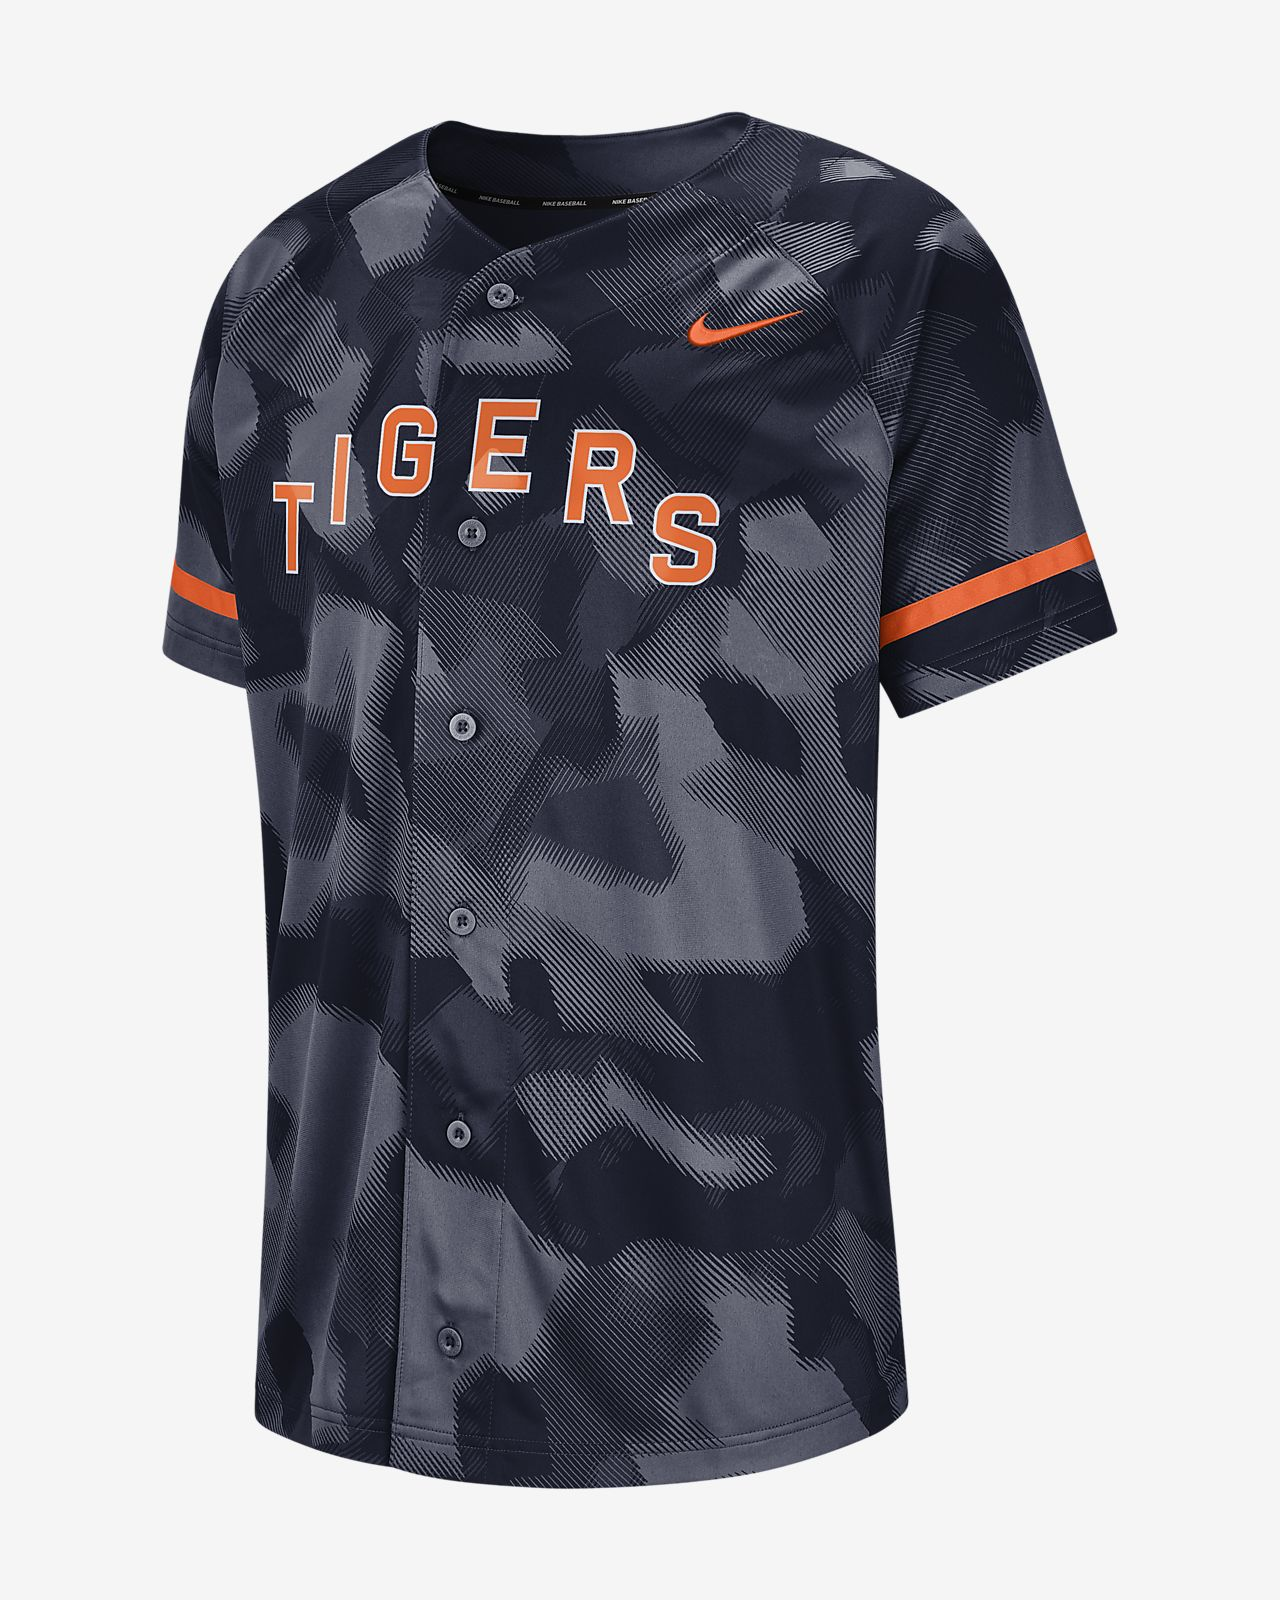 Nike Dri-FIT (MLB Tigers) Men s Baseball Jersey. Nike.com 66ab2da73